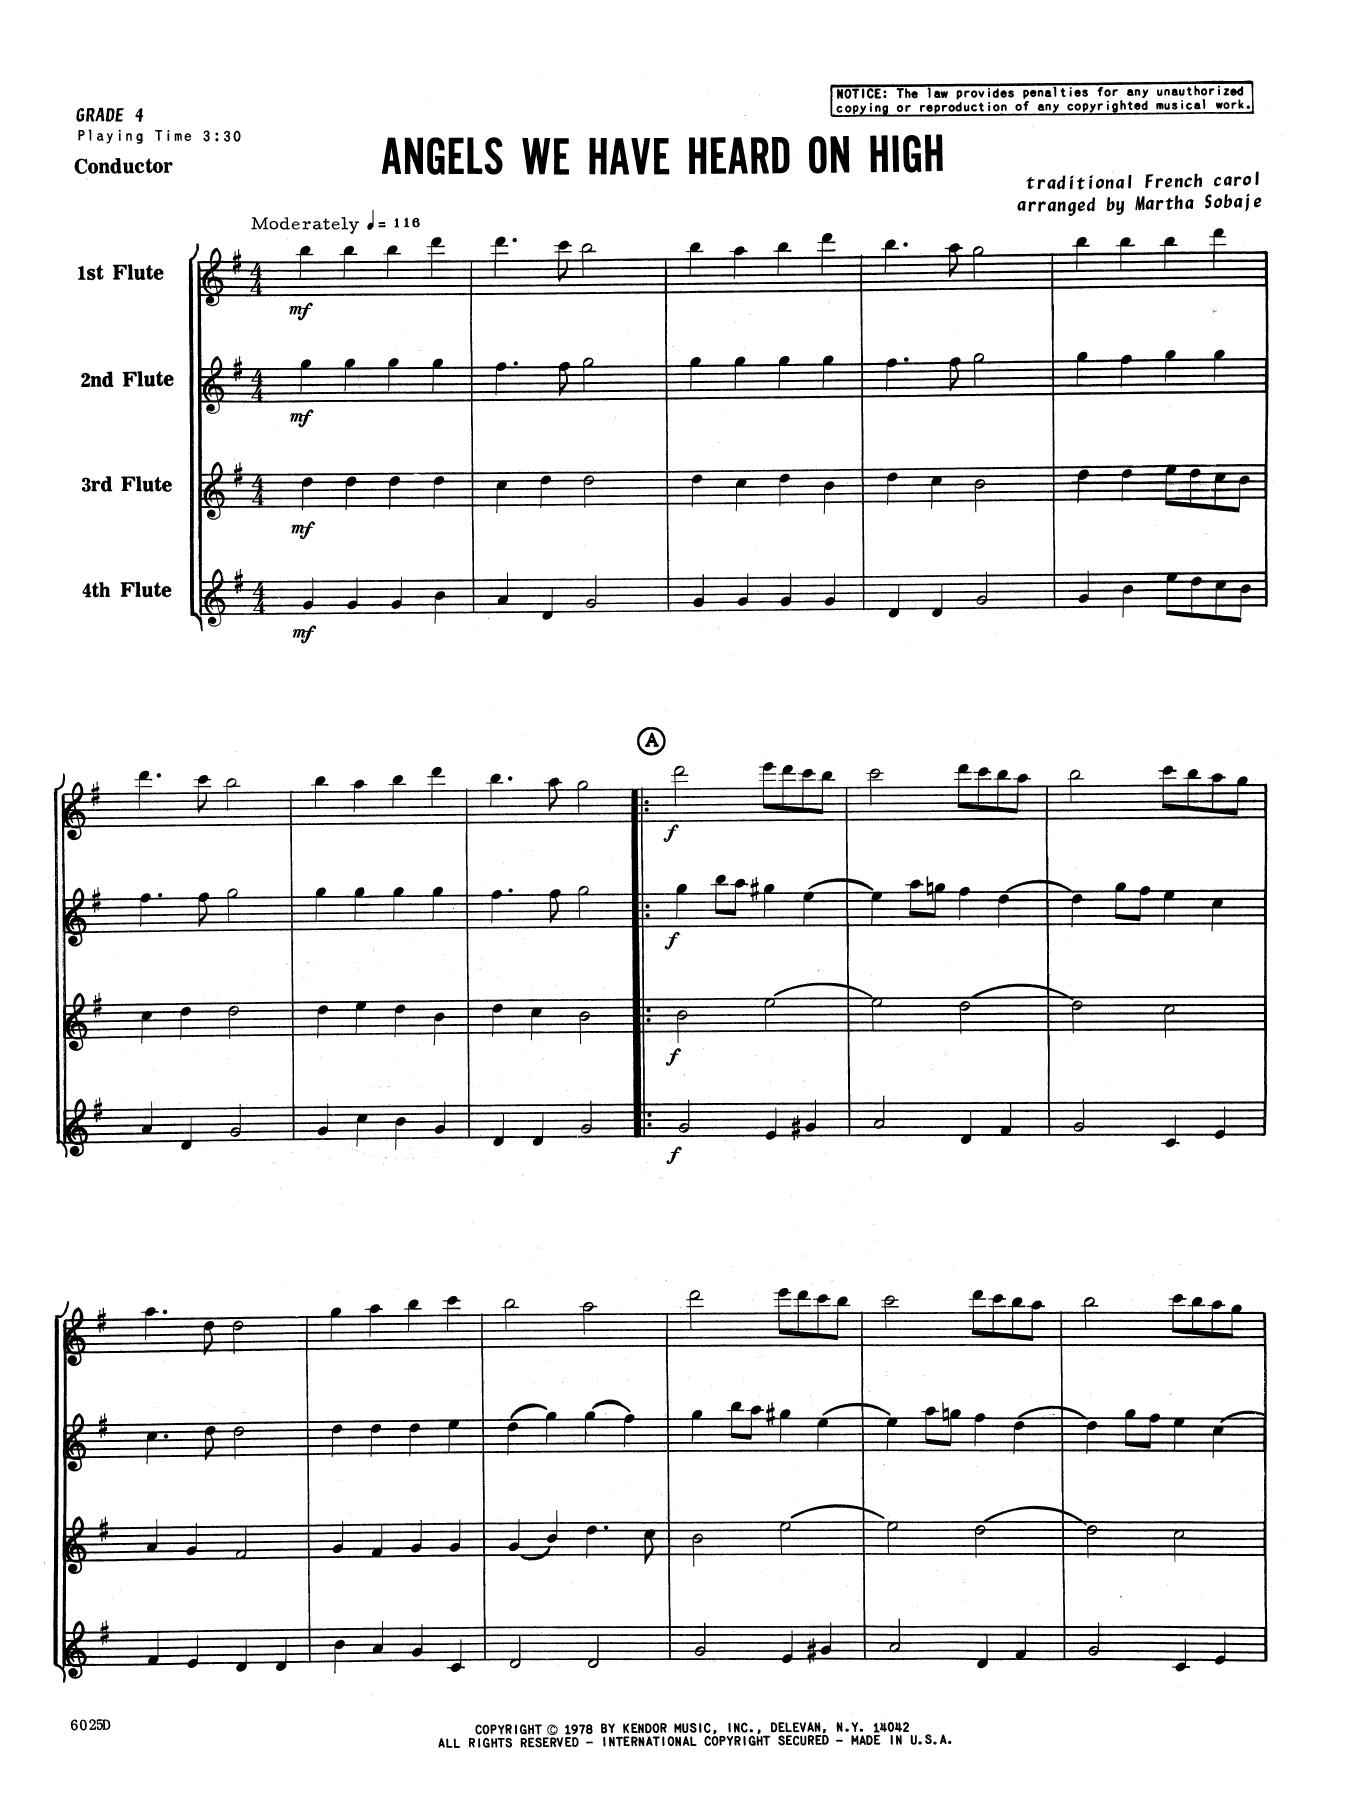 Angels We Have Heard on High (COMPLETE) sheet music for flute quartet by Sobaje. Score Image Preview.